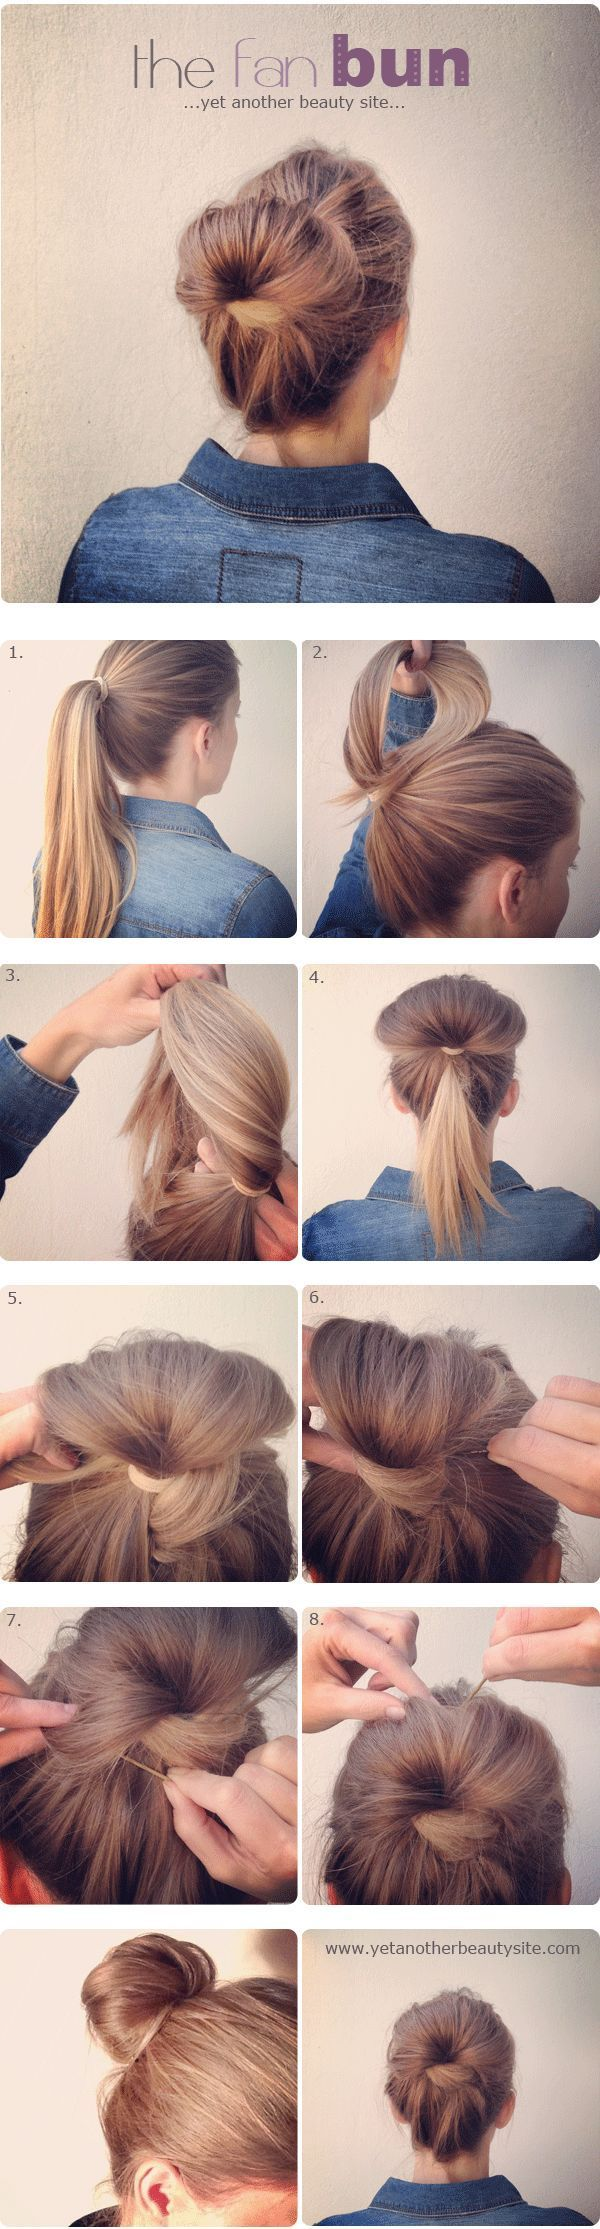 best 25+ fast easy hairstyles ideas on pinterest | fast hairstyles